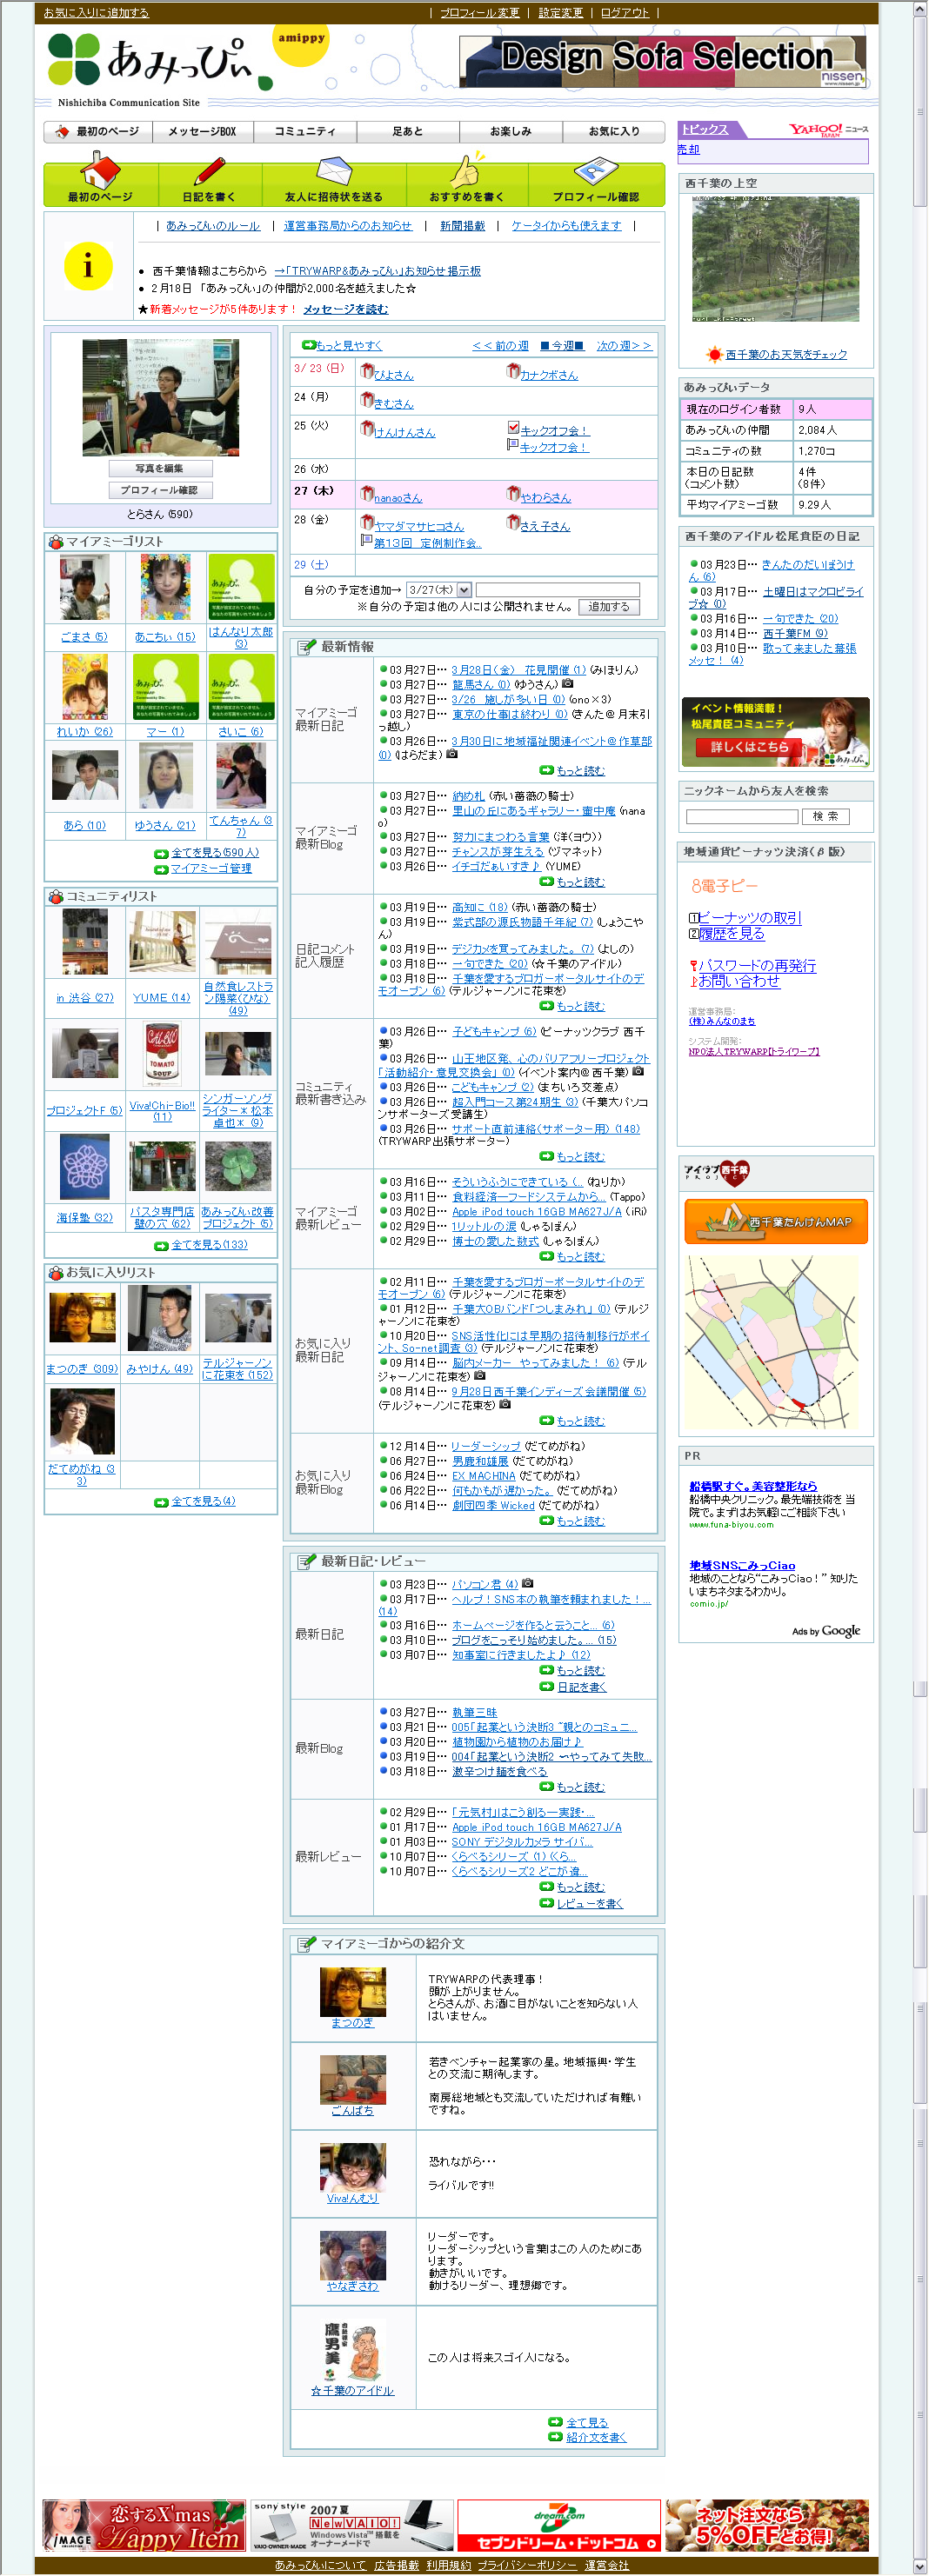 http://trac.openpne.jp/attachment/wiki/pne-book-11/amippyall.png